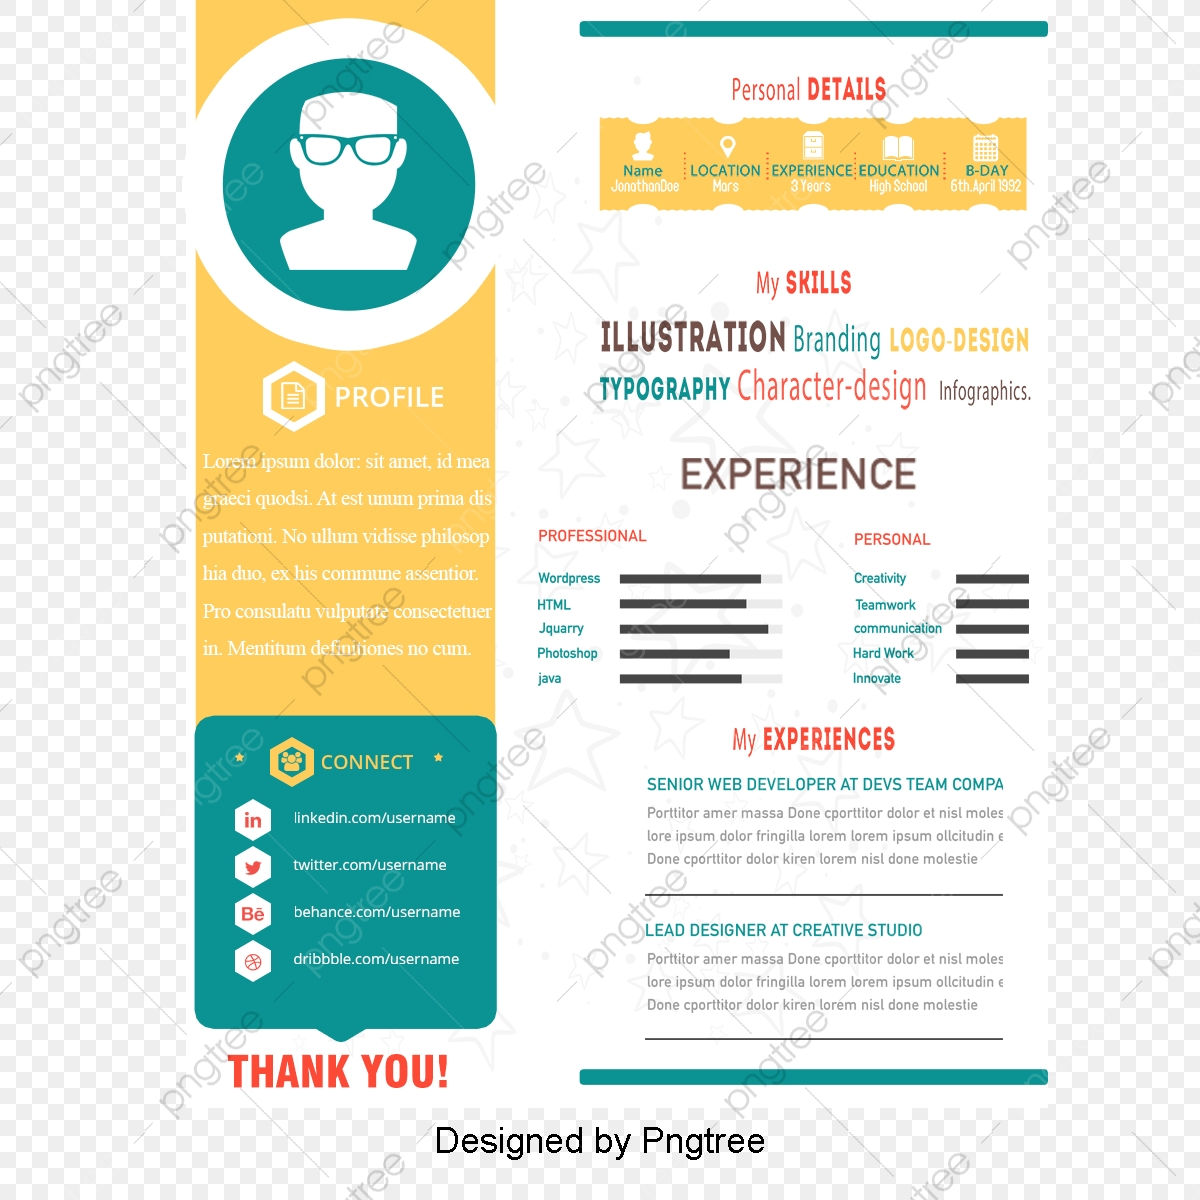 Creative Style Flat Resume Templates Vector Flat Icon Resume Png Transparent Image And Clipart For Free Download